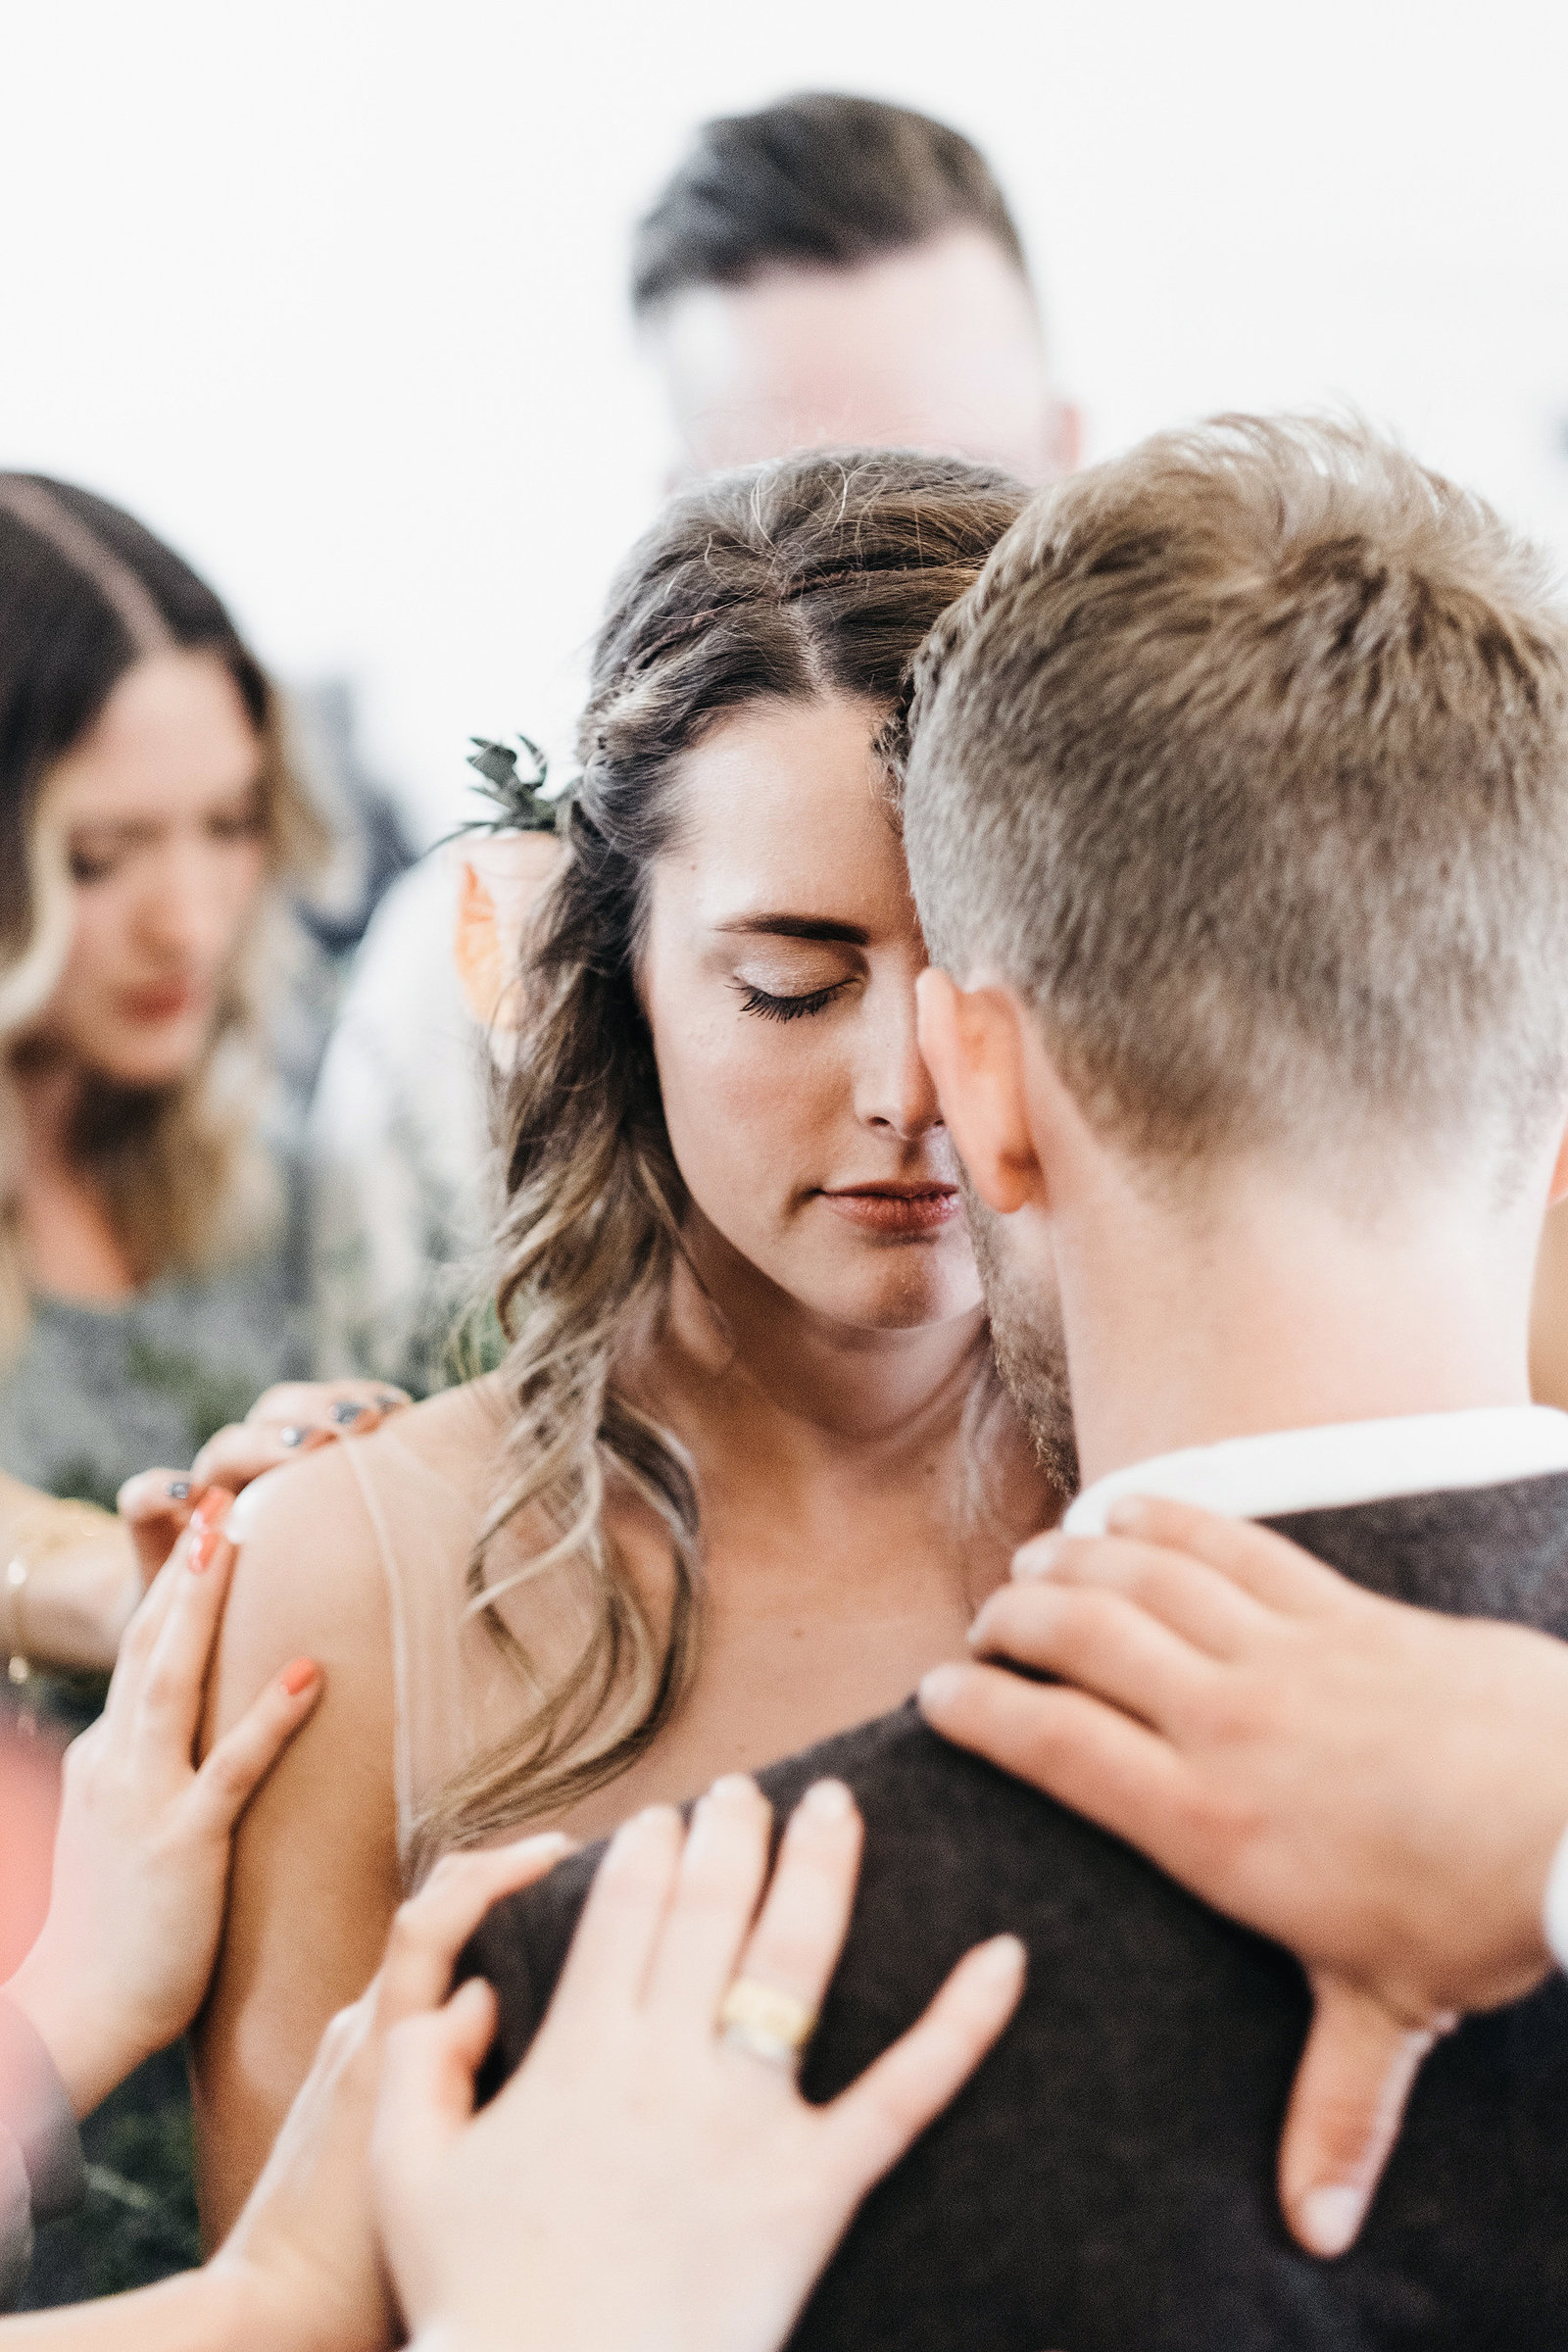 athena-and-camron-seattle-wedding-photographer-dairyland-snohomish-rustic-barn-wedding-flowers-styling-inspiration-lauren-madison-59